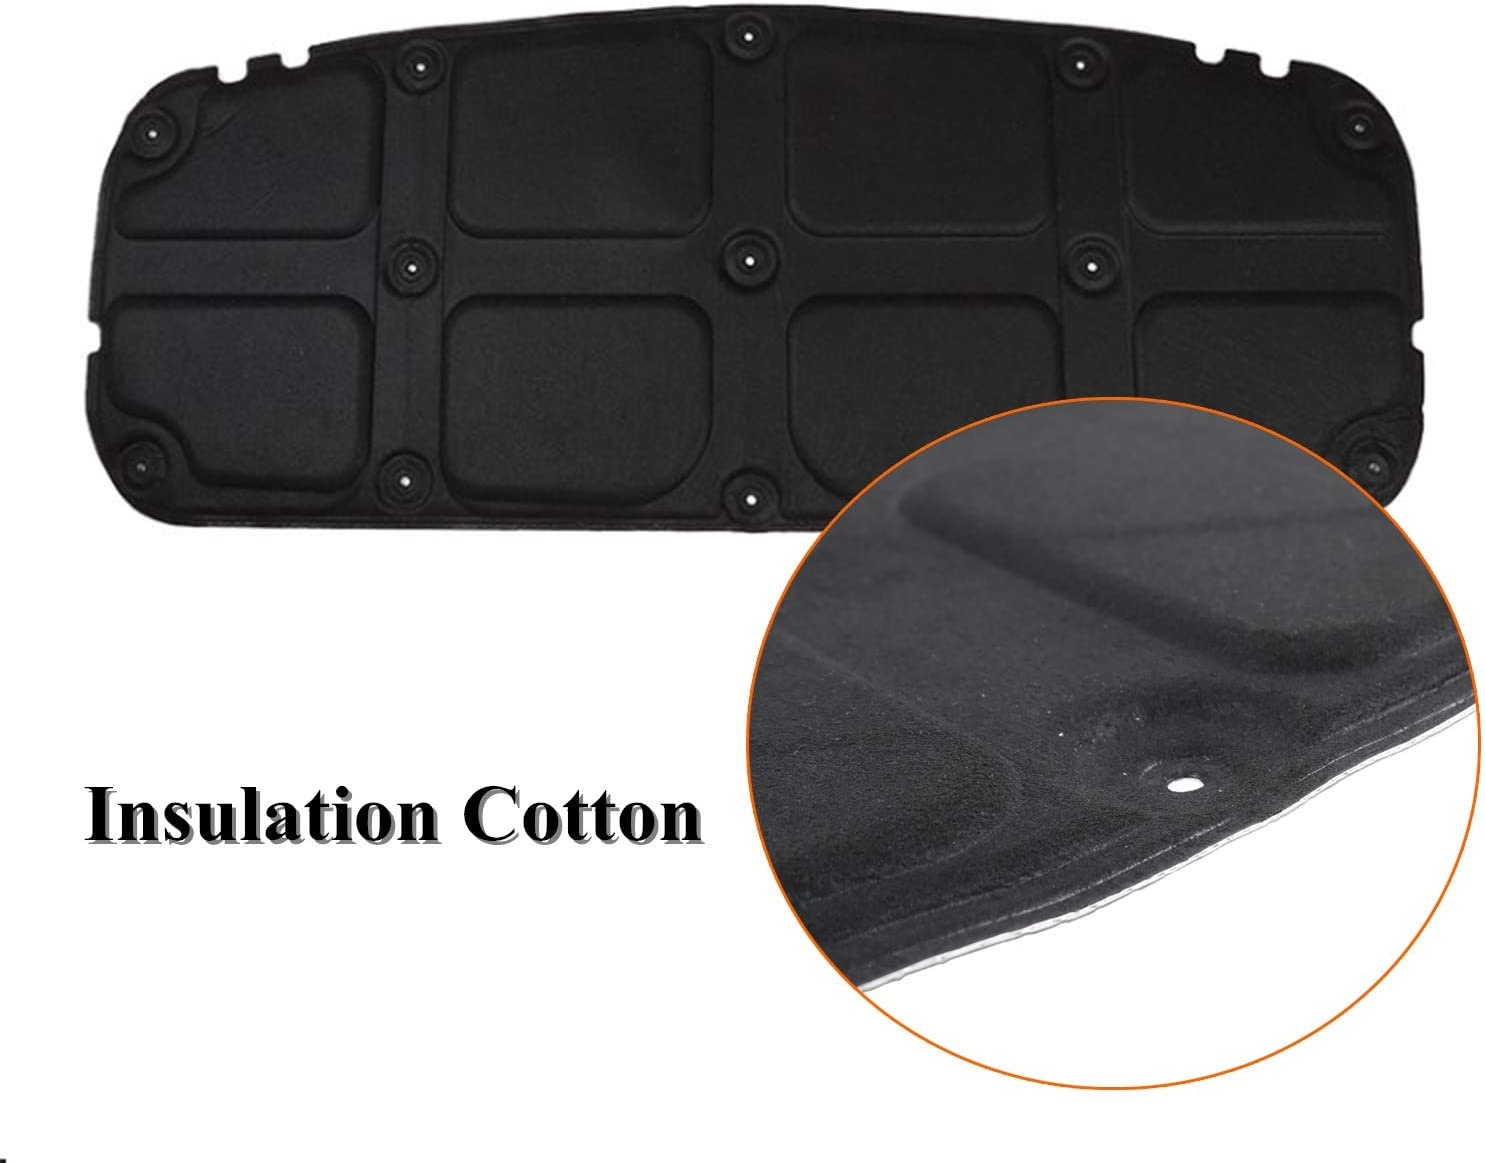 Car Accessories LZTQ Soundproof Insulation Cotton for Suzuki Jimny 2019 2020 JB74 Car Hood Heat Insulation Pad for Suzuki Jimny 2019